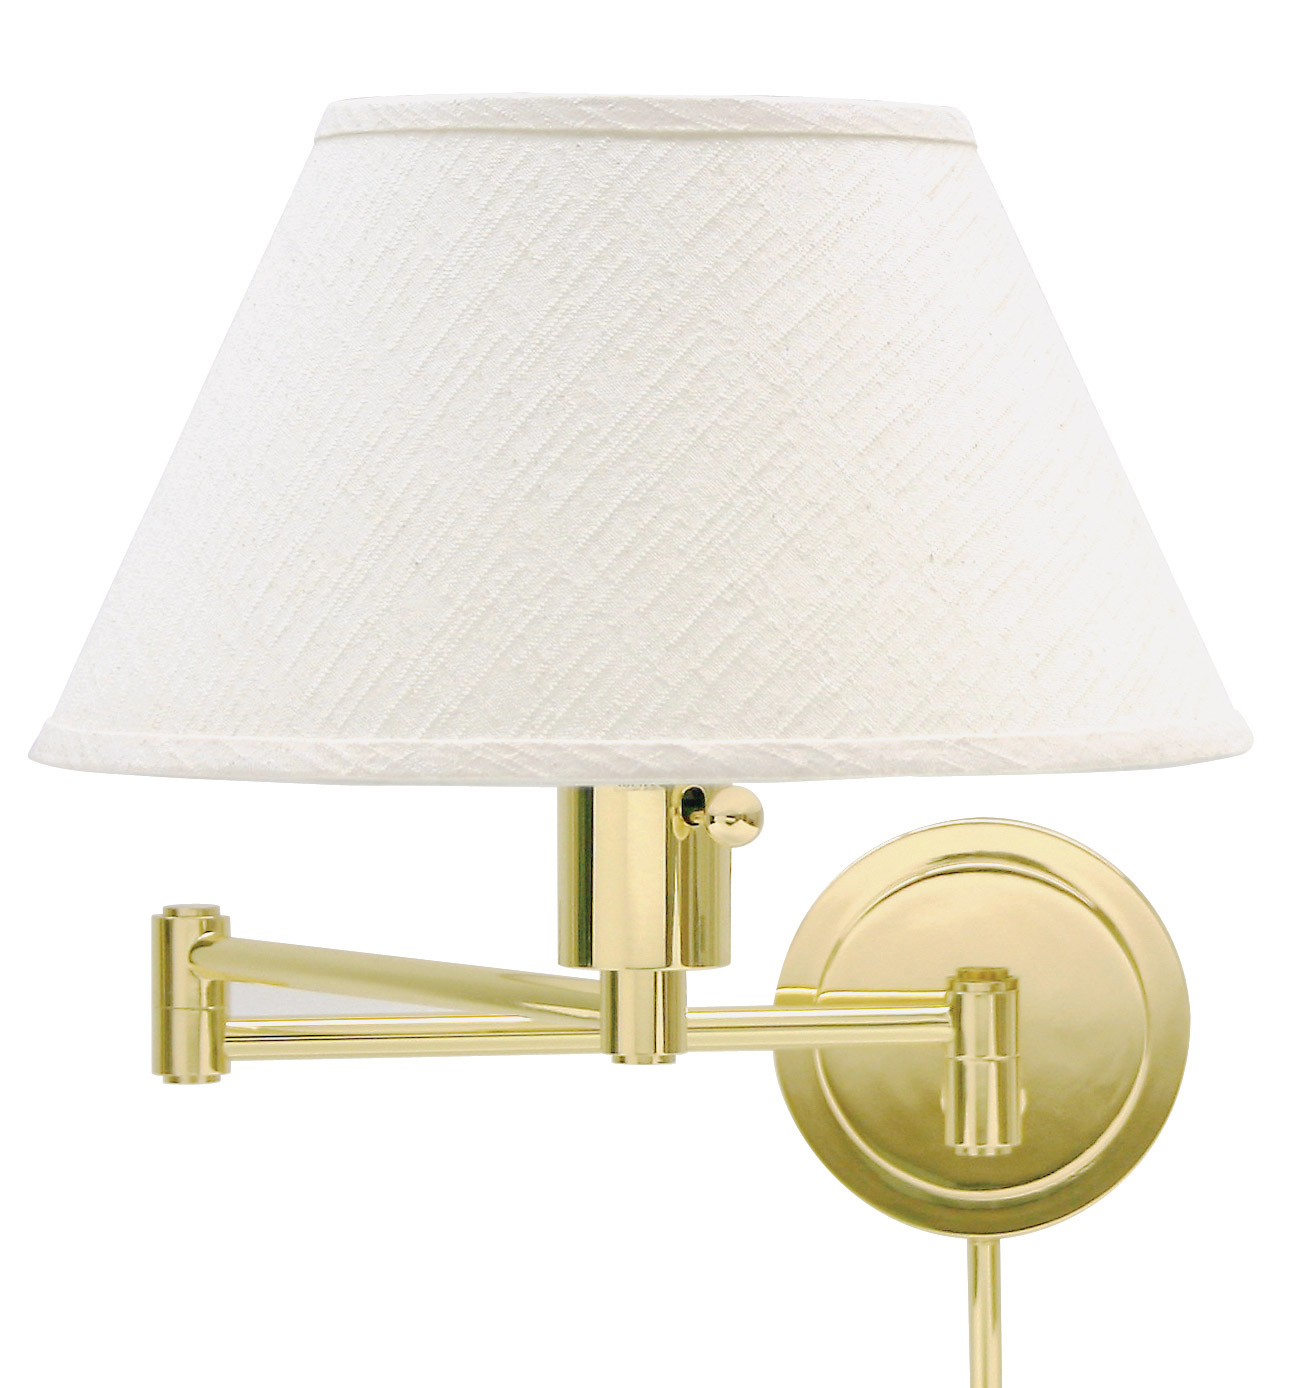 Wall Lamps Swing Arm : House of Troy WS14-61 Swing Arm Wall Lamp